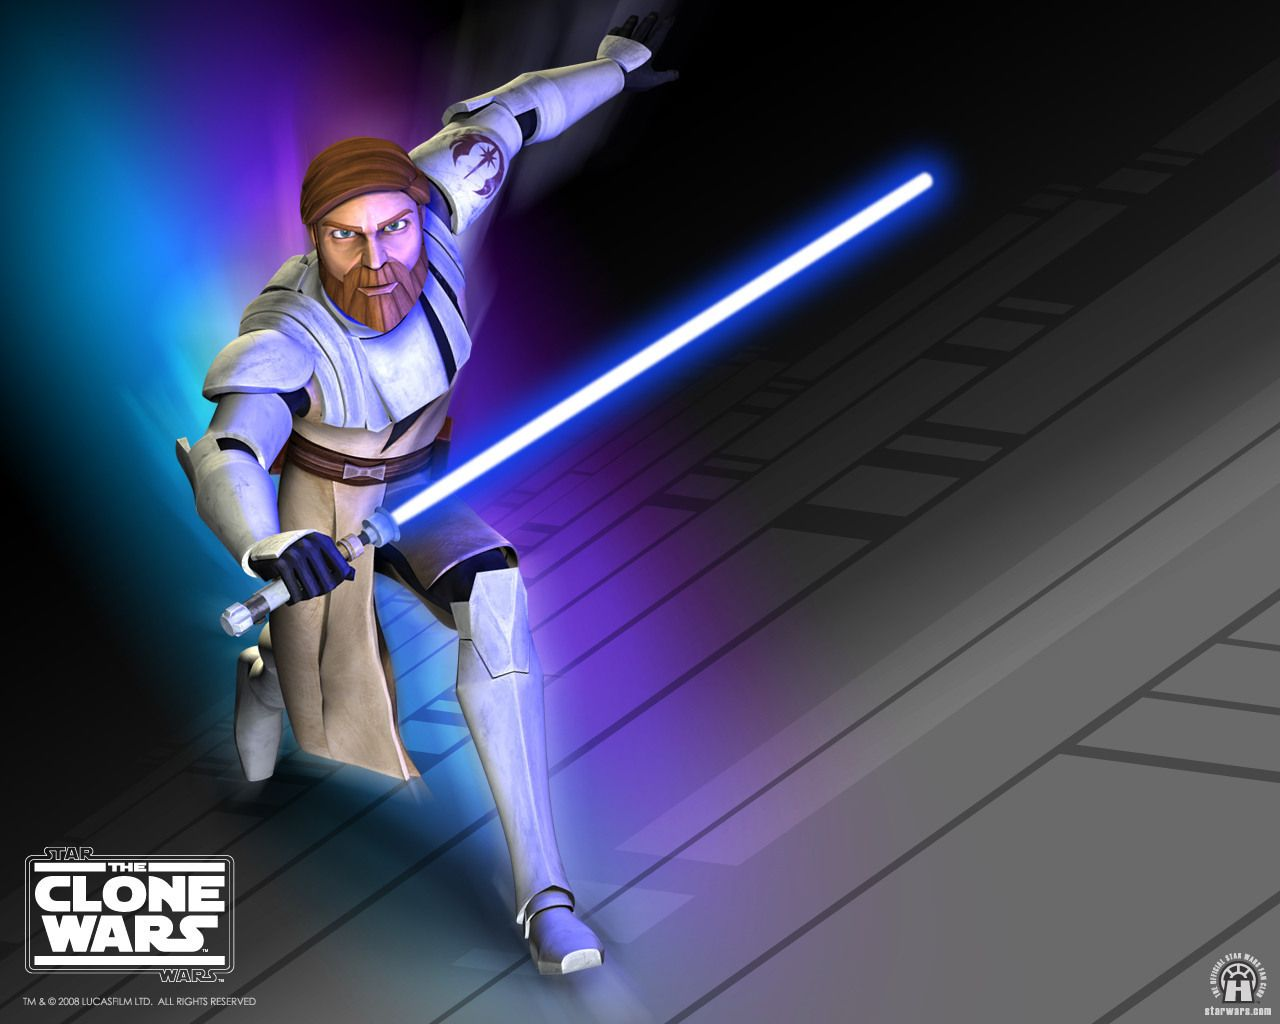 Obi Wan Kenobi Wallpaper Clone Wars Star Wars Wallpaper Clone Wars Star Wars Clone Wars